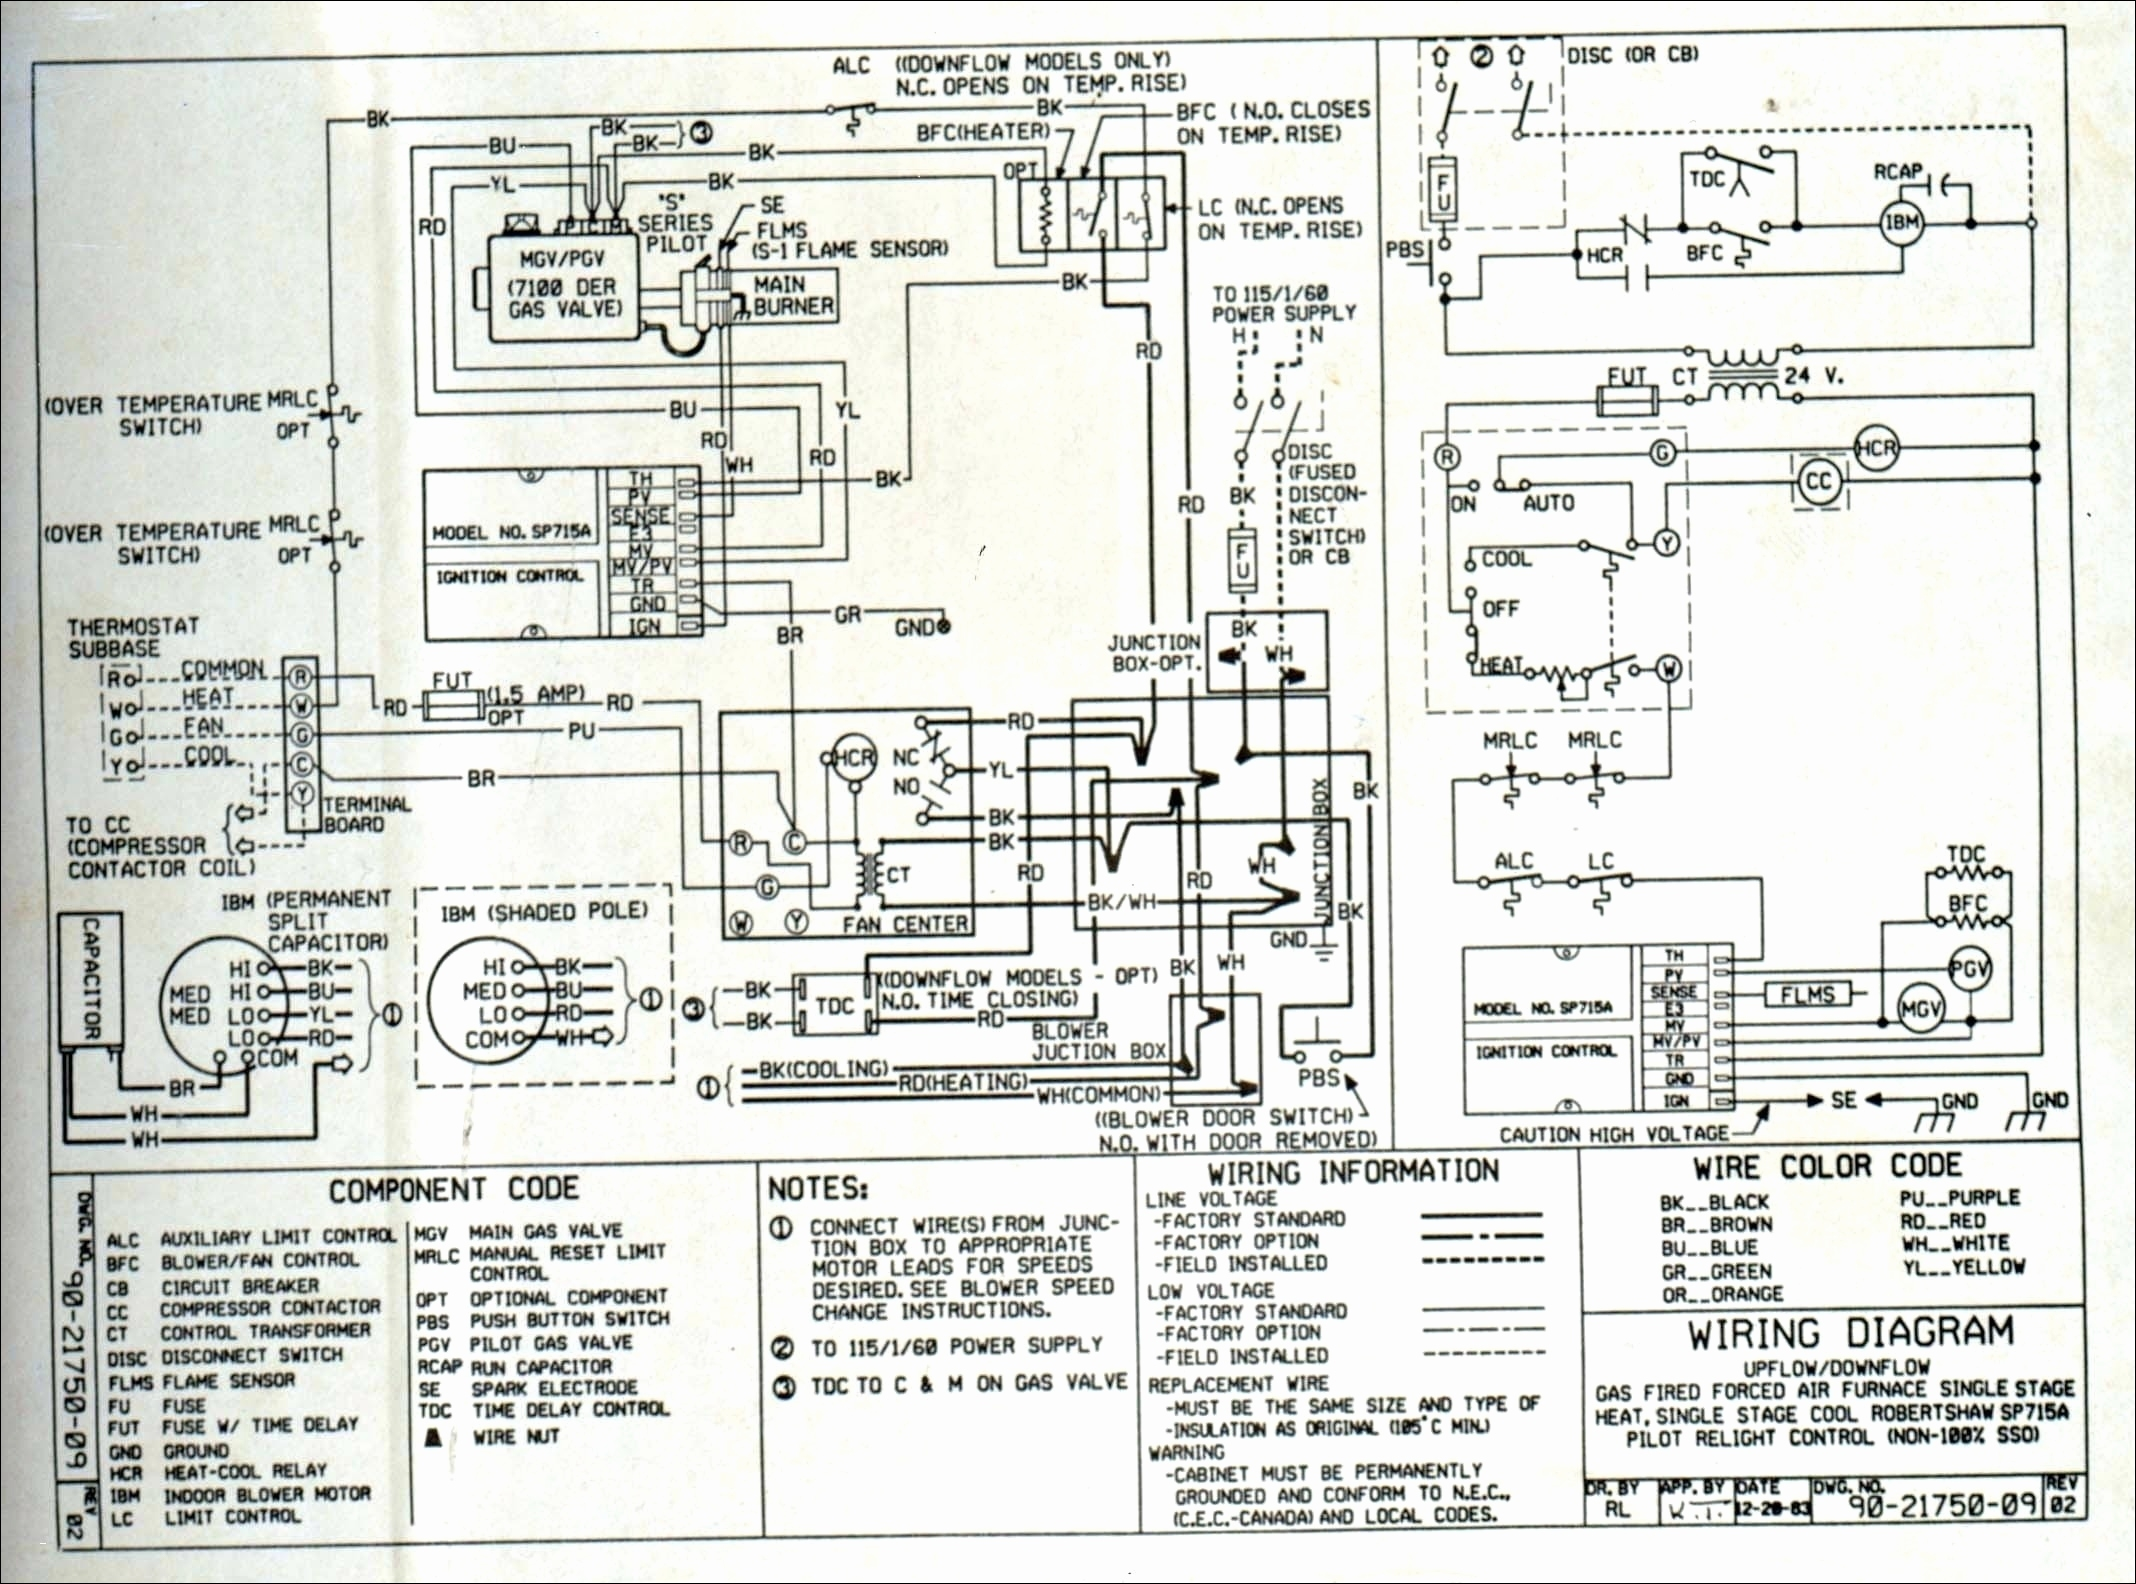 york furnace wiring diagram wiring diagram sheet electric furnace wiring diagram sequencer wiring diagram electric furnace [ 2136 x 1584 Pixel ]